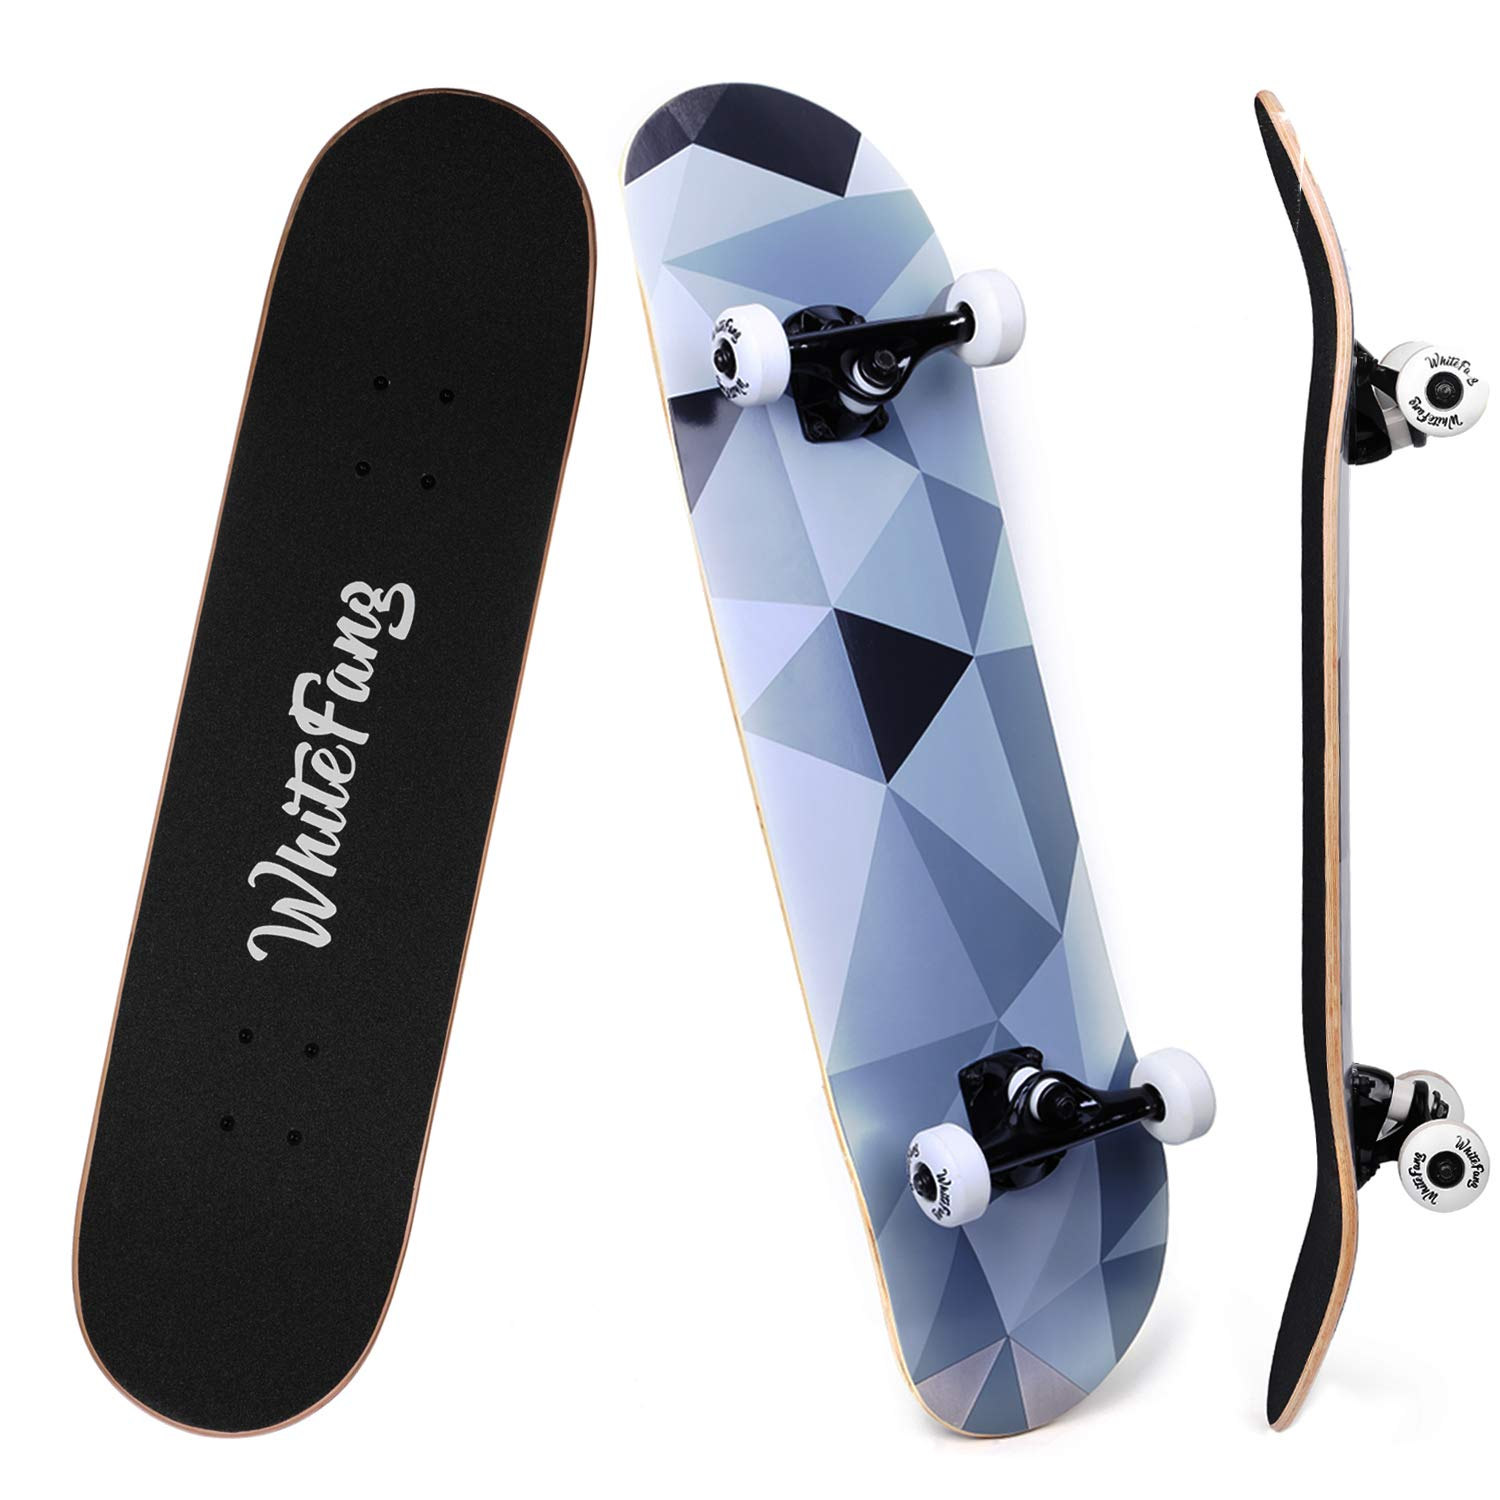 WhiteFang Skateboard Complete Skateboards Beginners